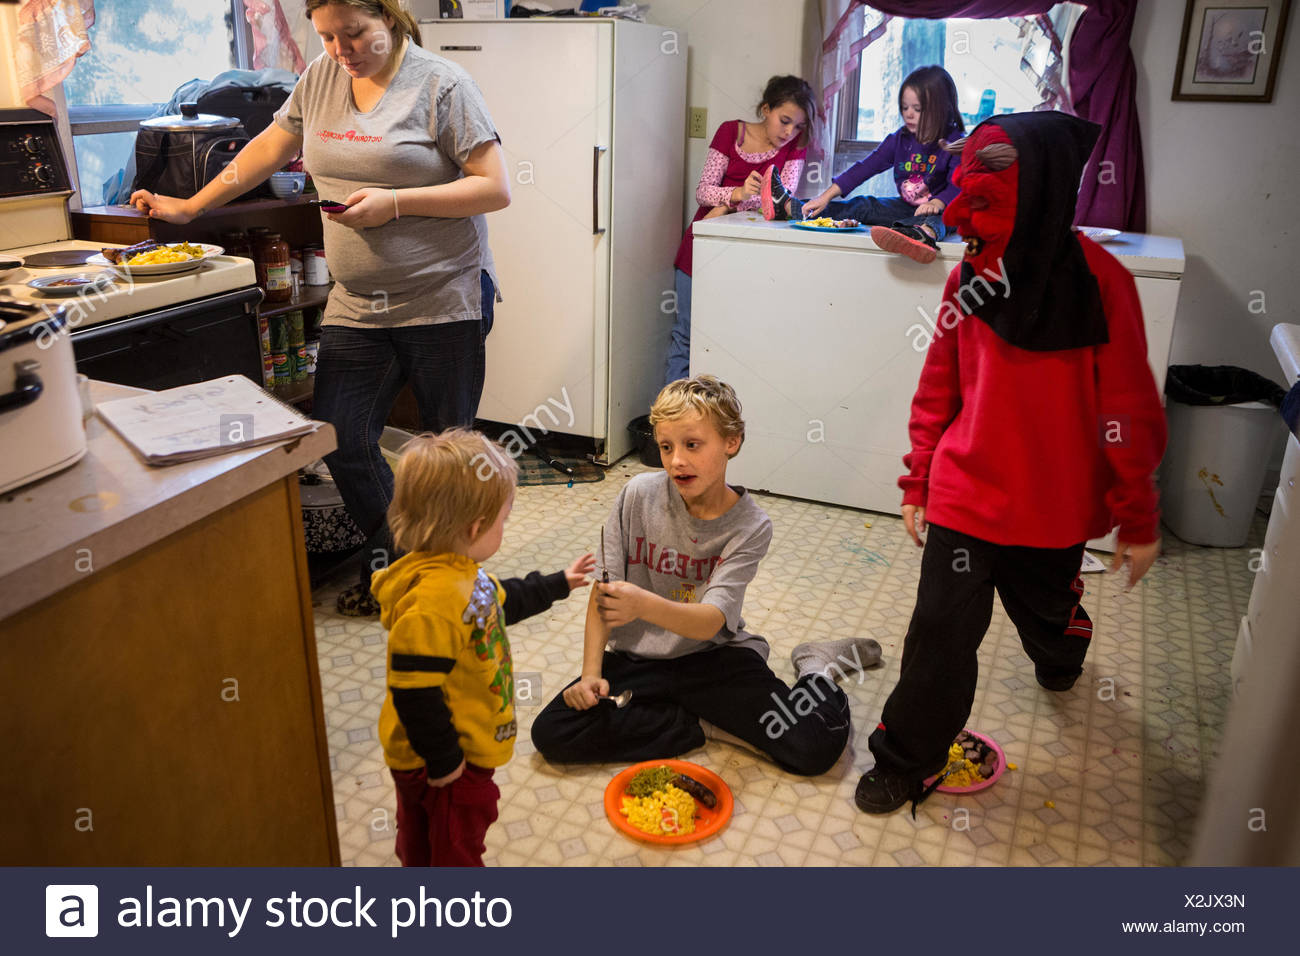 Dinner is a haphazard affair for a financially struggling family. - Stock Image